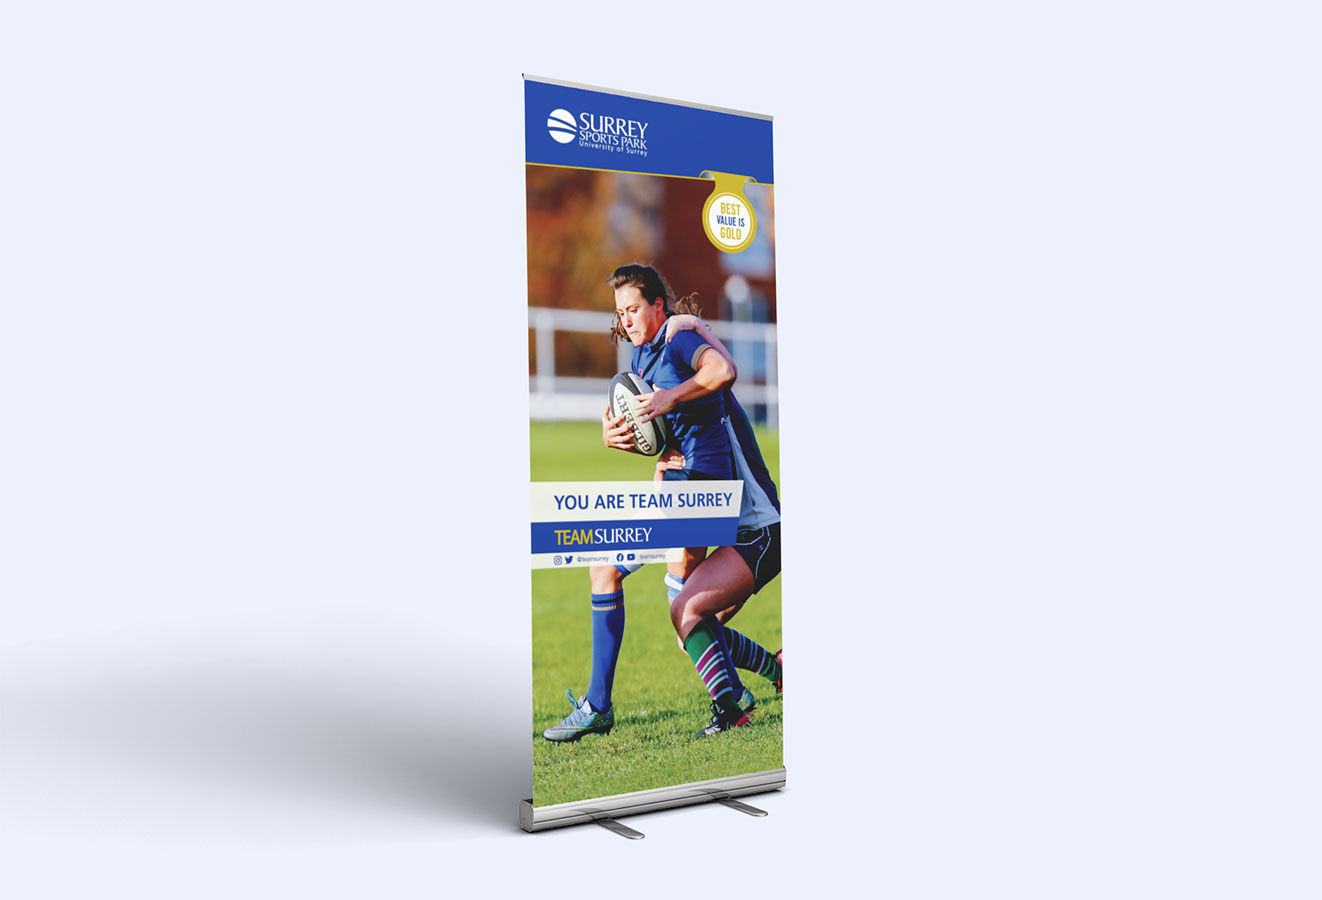 Team Surrey pull up banner with players from women's rugby team